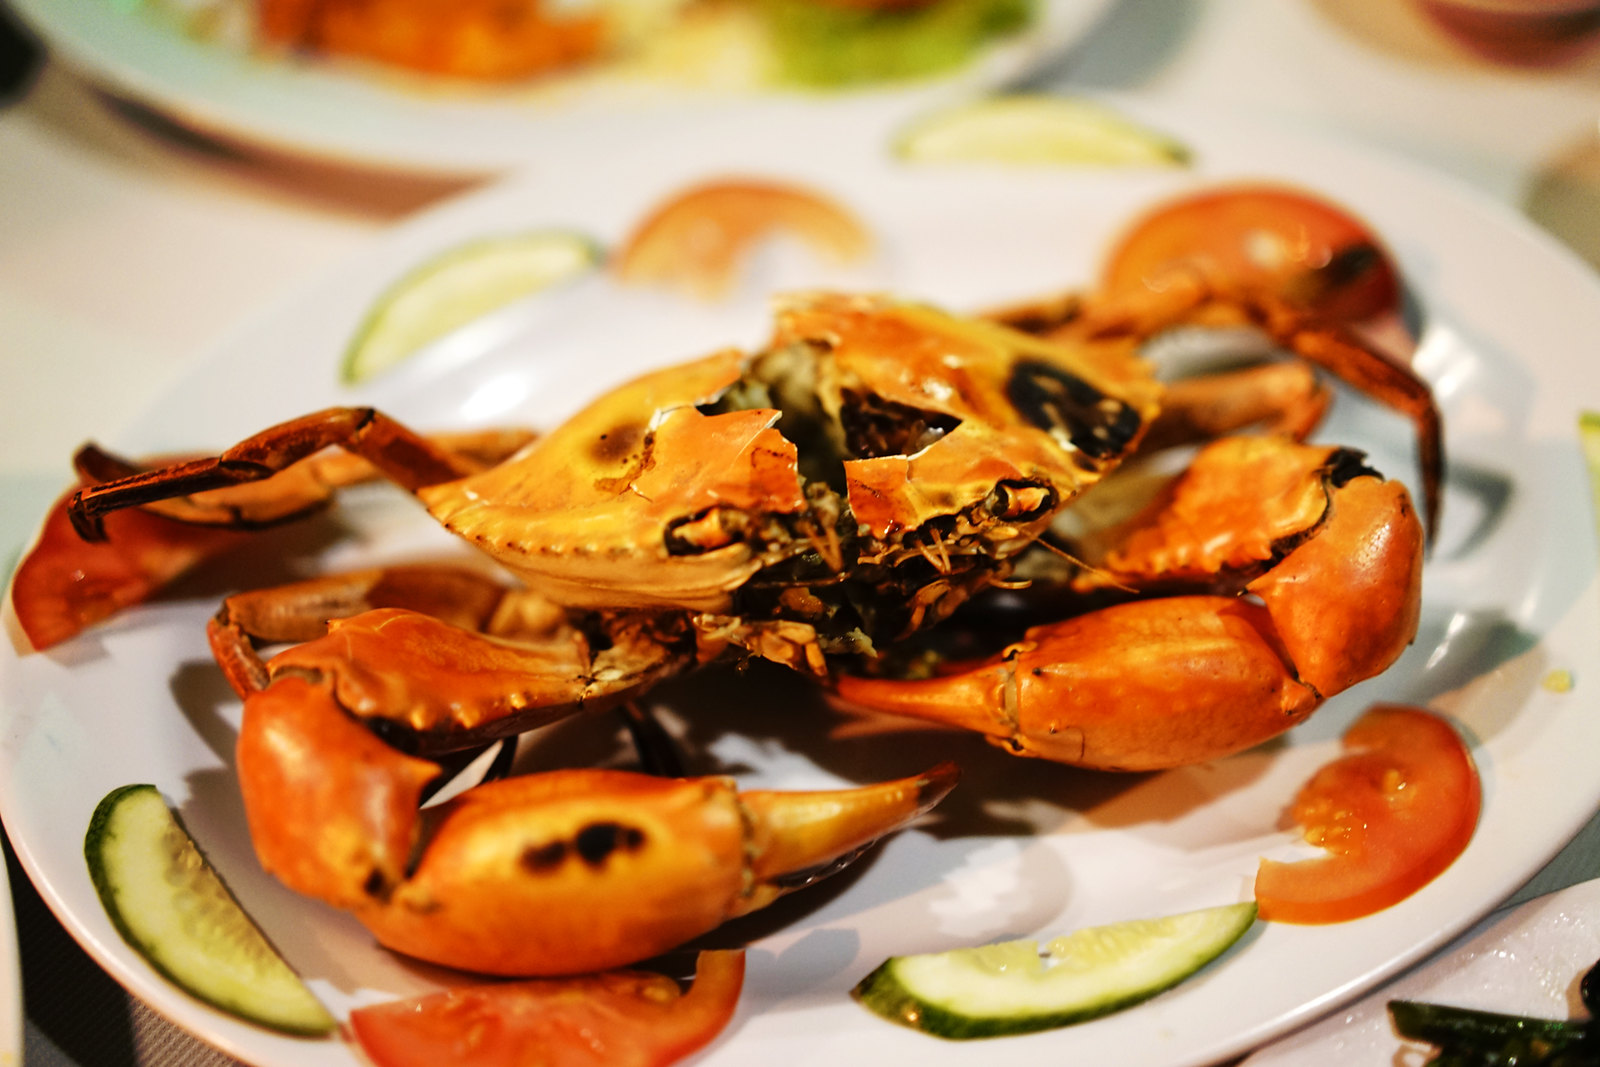 Grilled Crab from Ganh Hao in Vung Tau